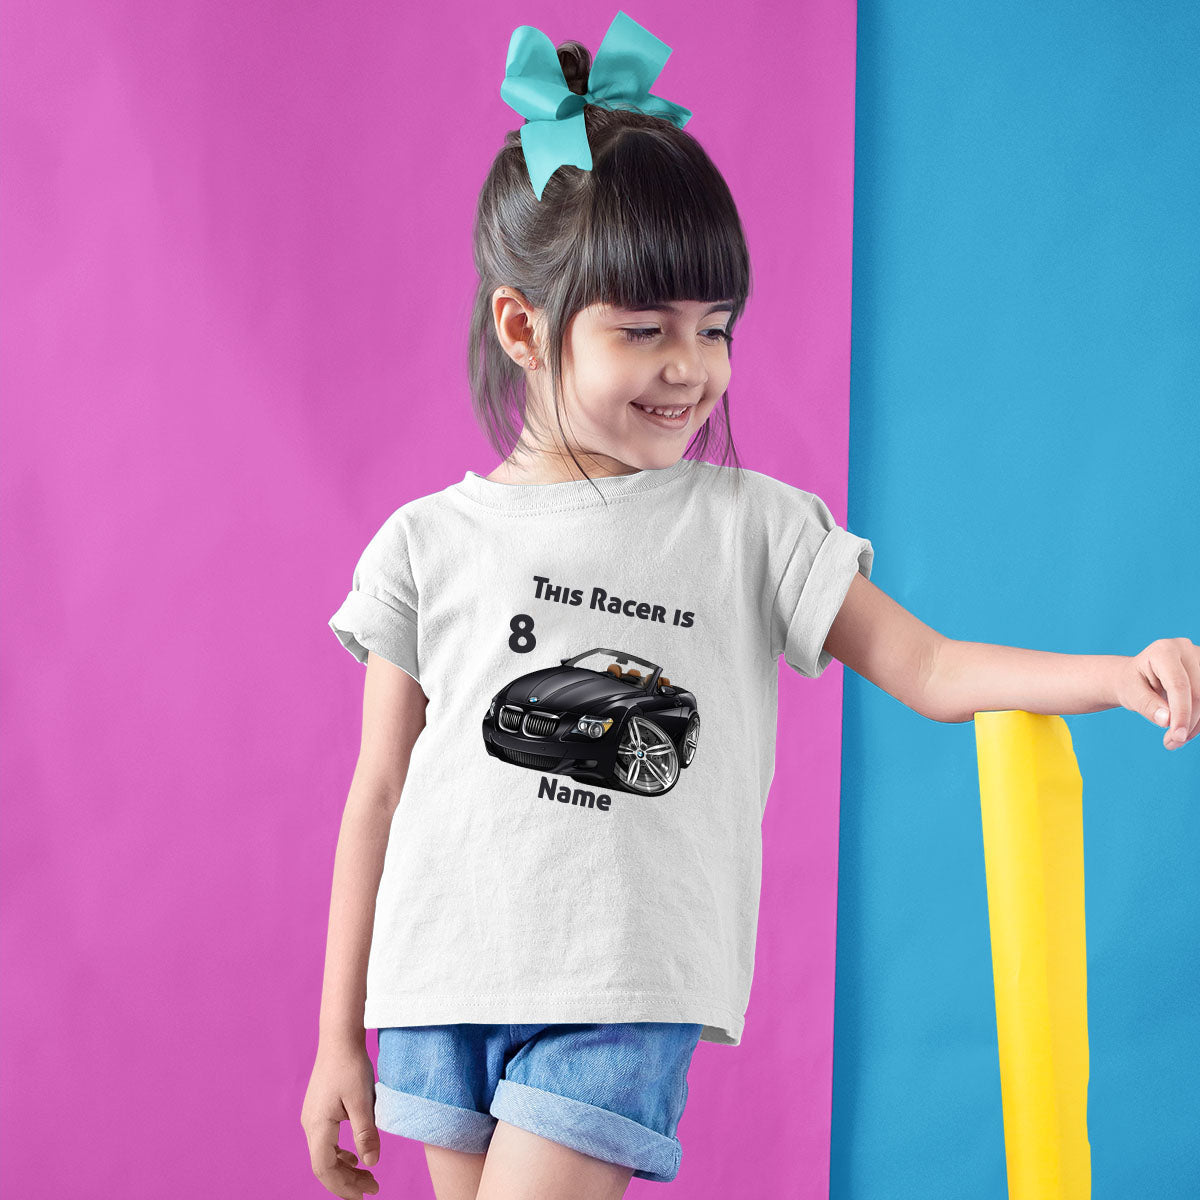 Sprinklecart This Racer is 8 Printed Birthday T Shirt | Personalized Birthday Gift for Your Little Racer